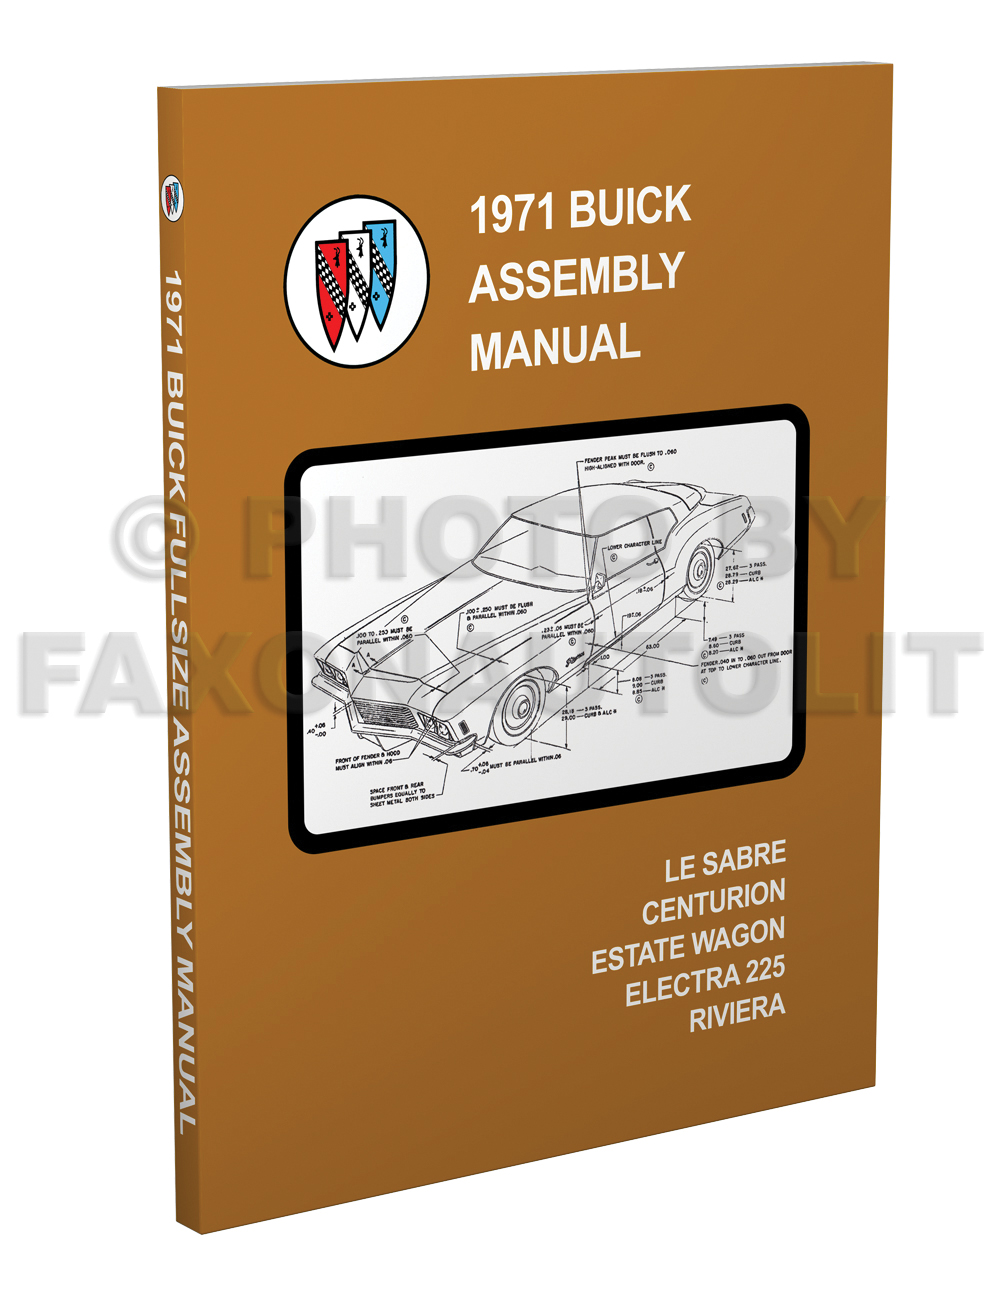 1971 Buick Assembly Manual LeSabre Centurion Electra Riviera Reprint